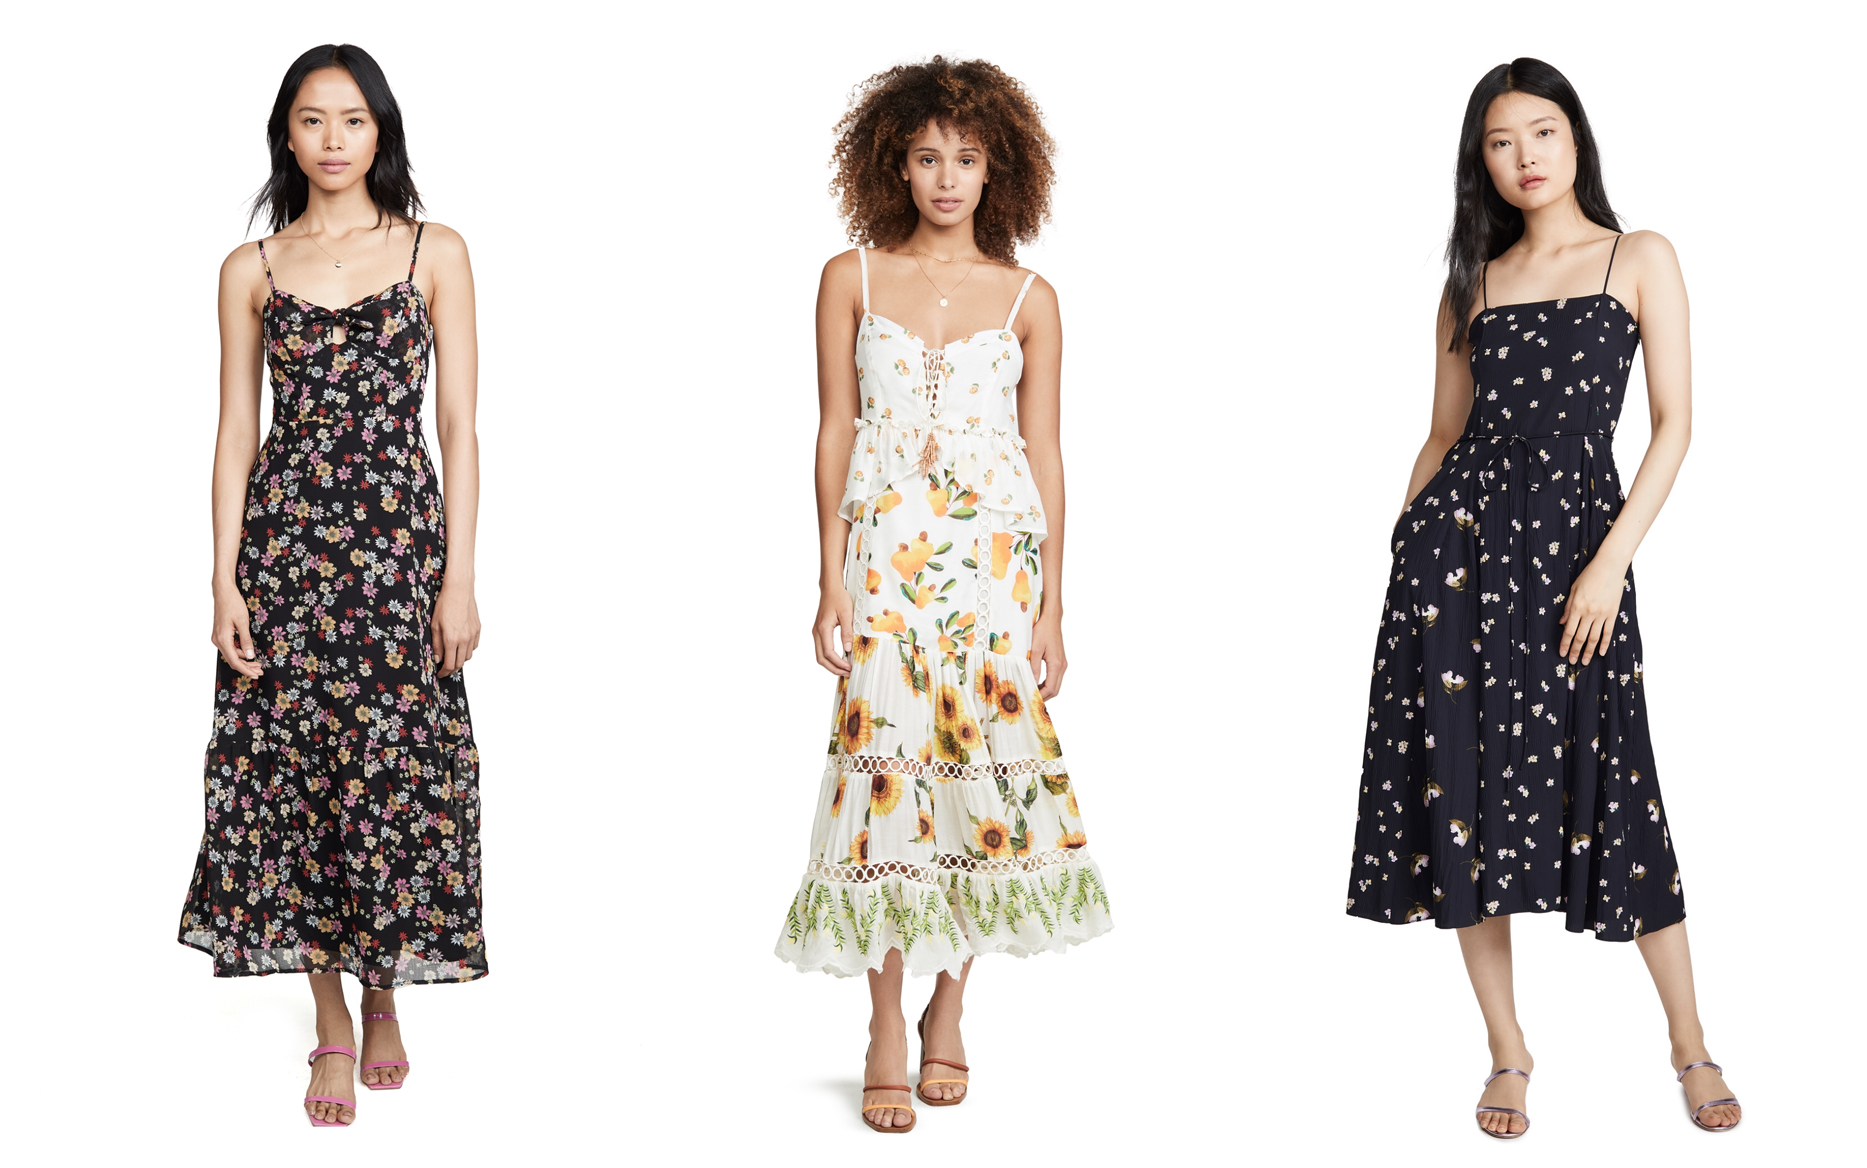 Retro Floral Dresses for Spring